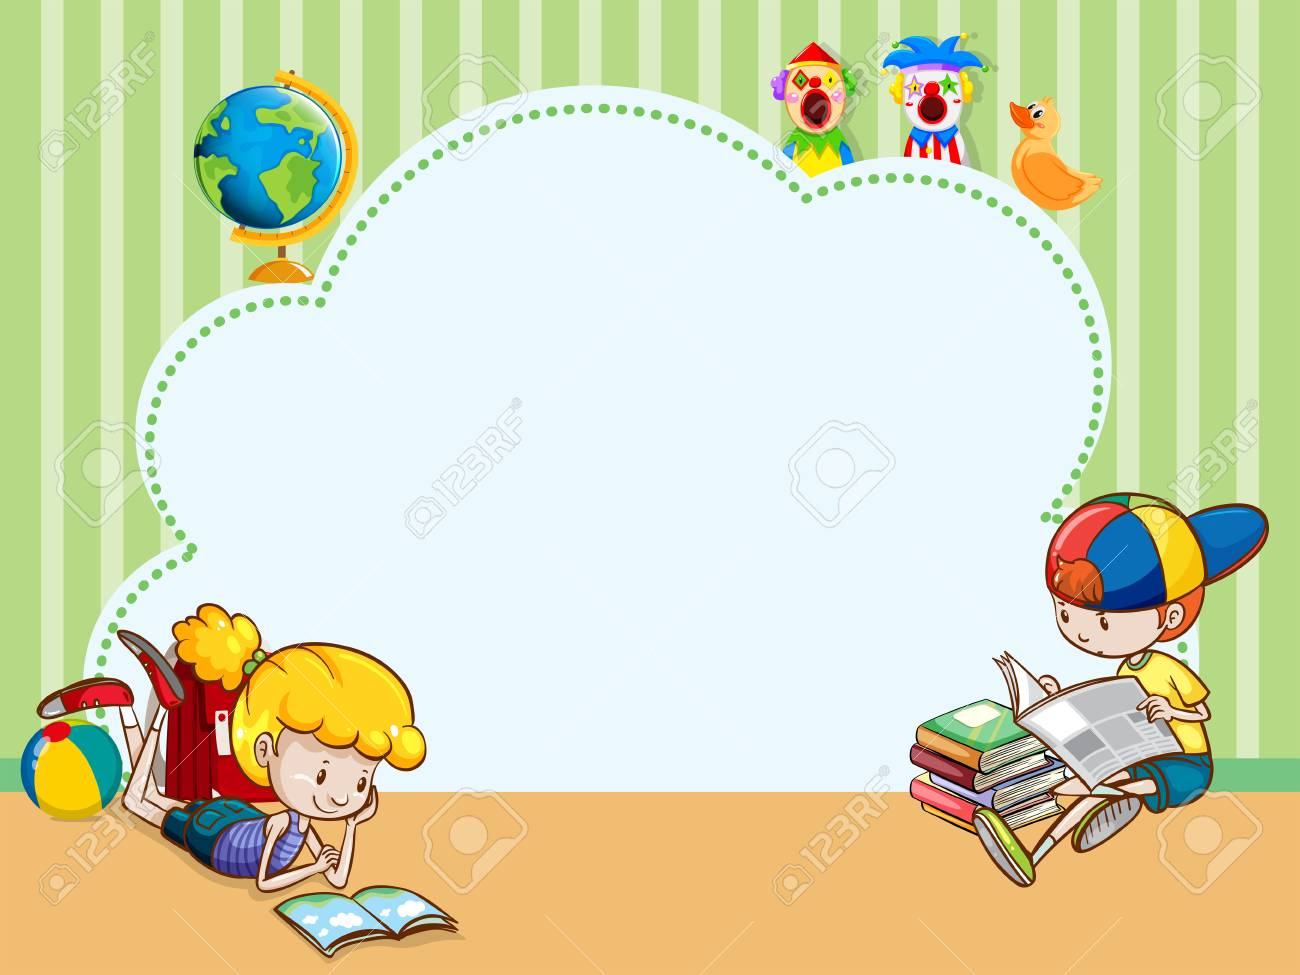 Border template with kids reading books illustration..